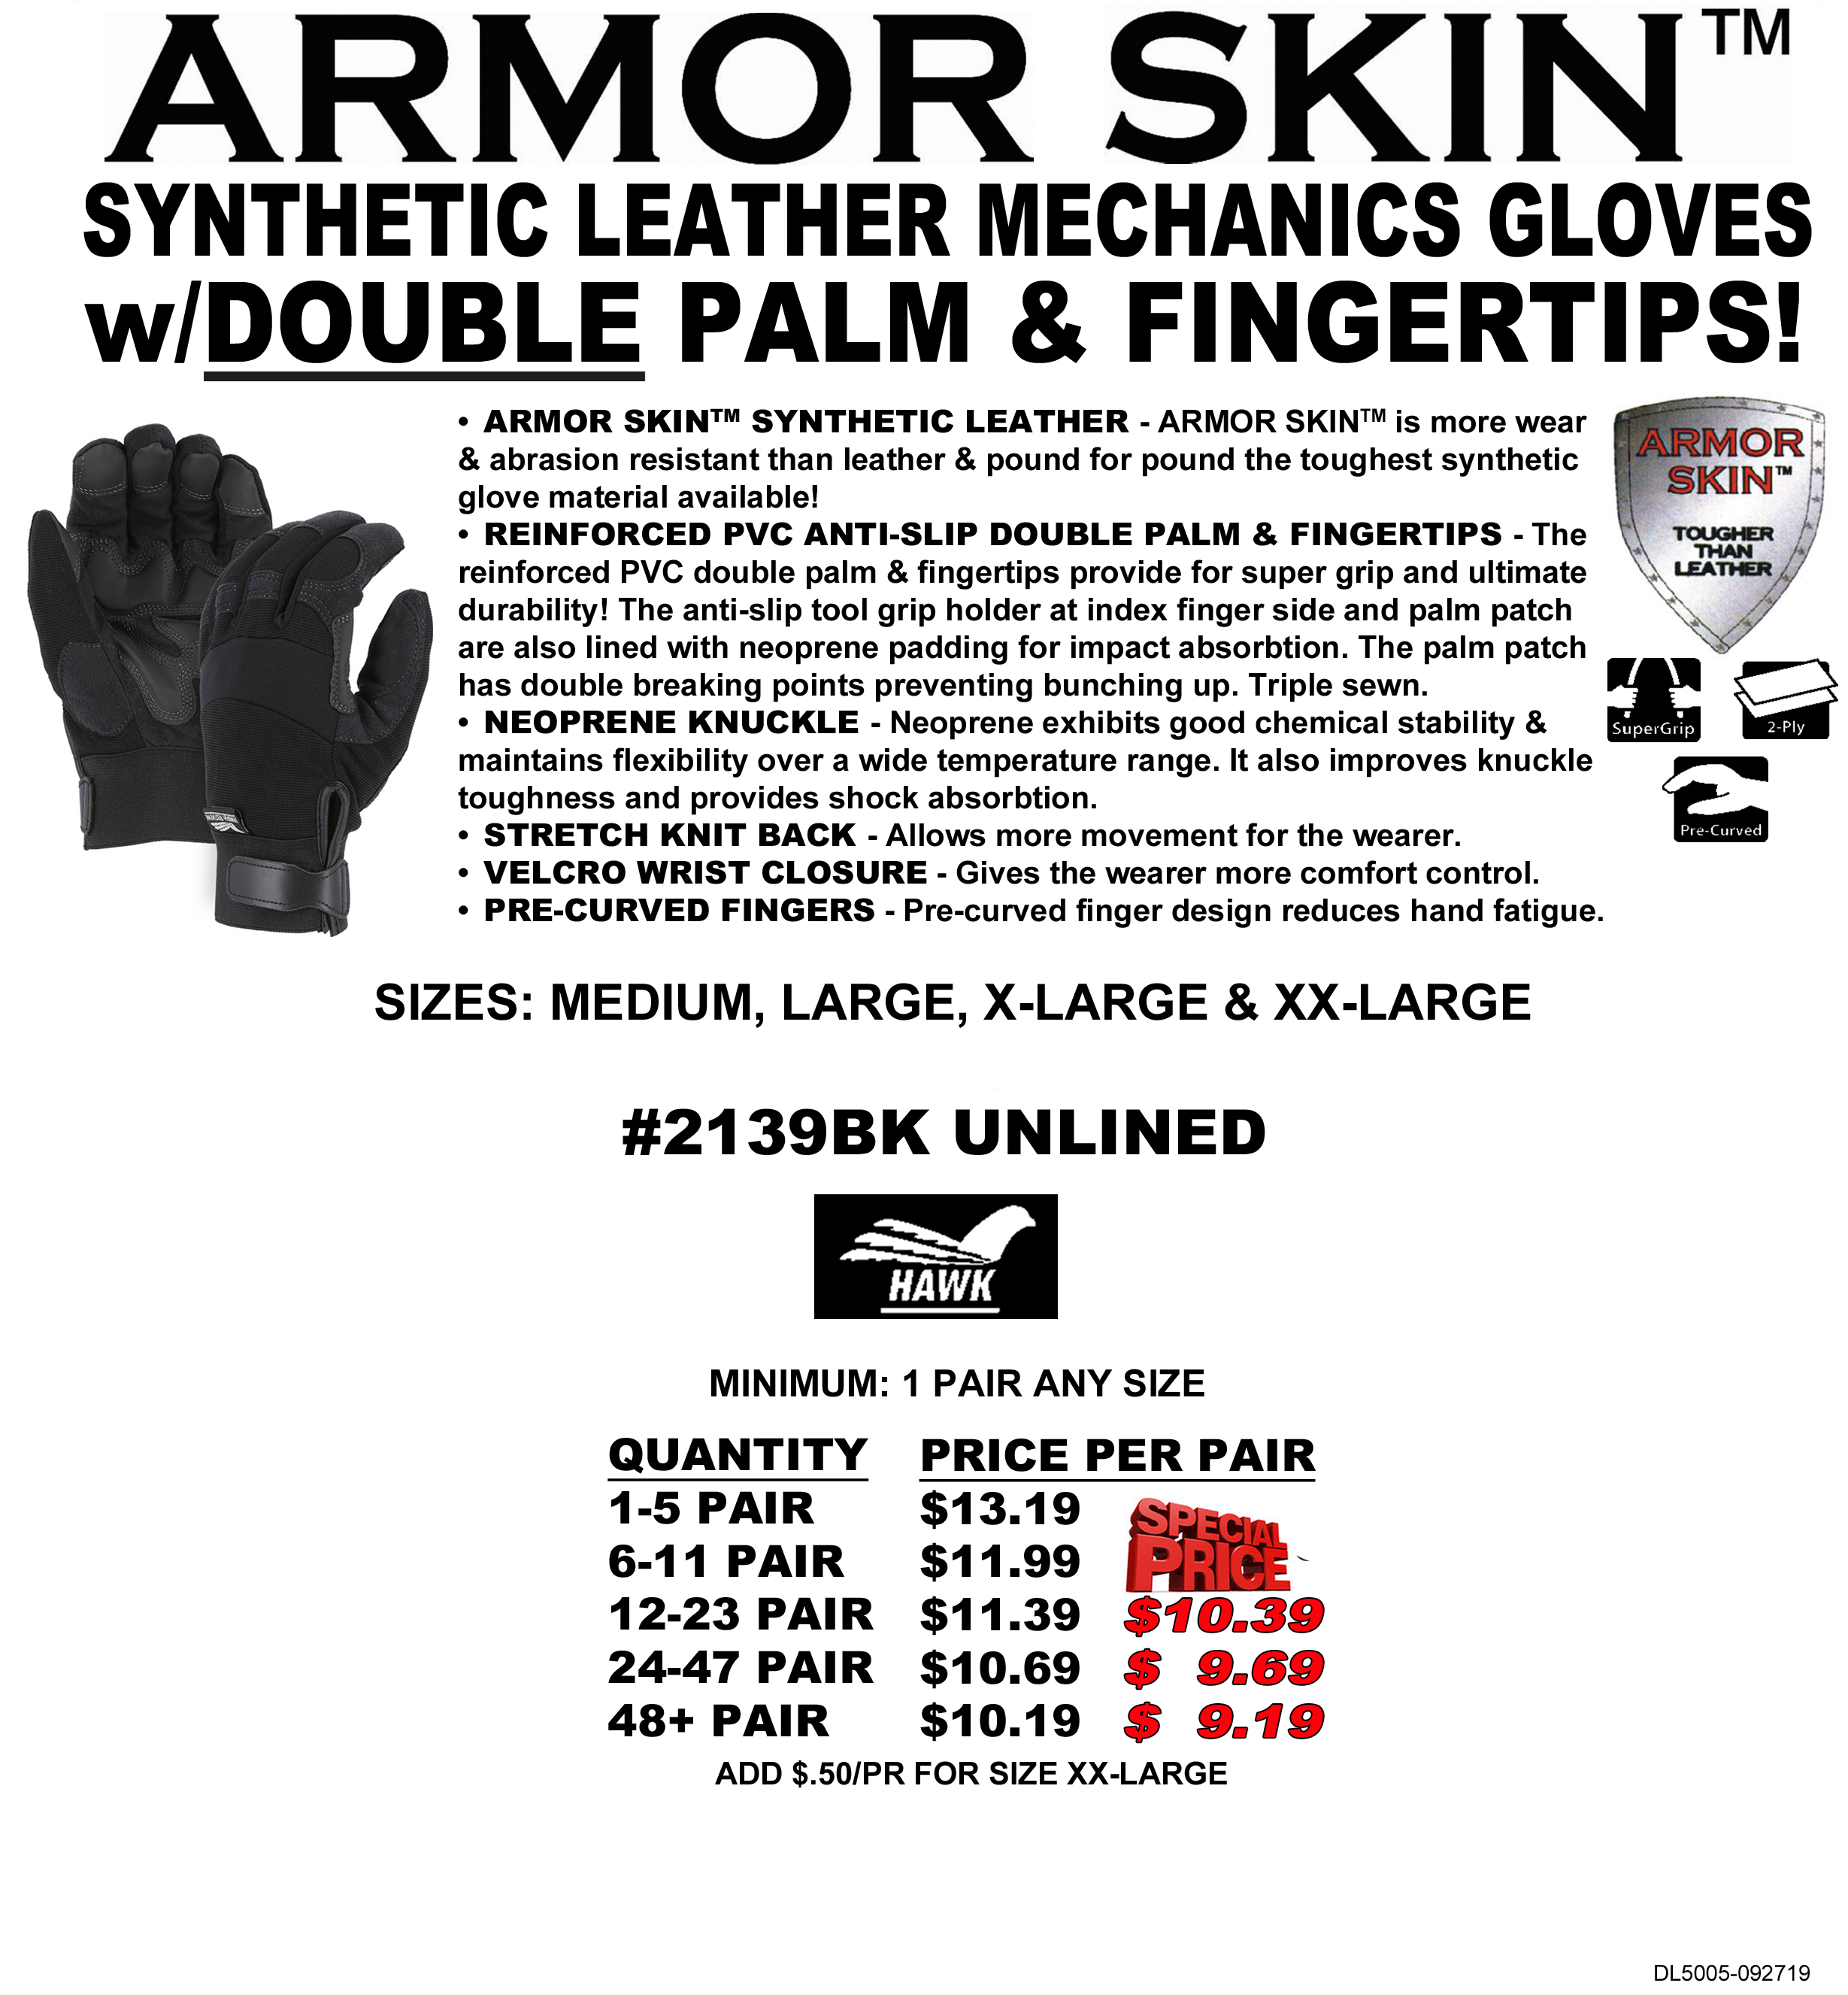 2139bk Armor Skin Hawk Synthetic Leather Mechanics Gloves With